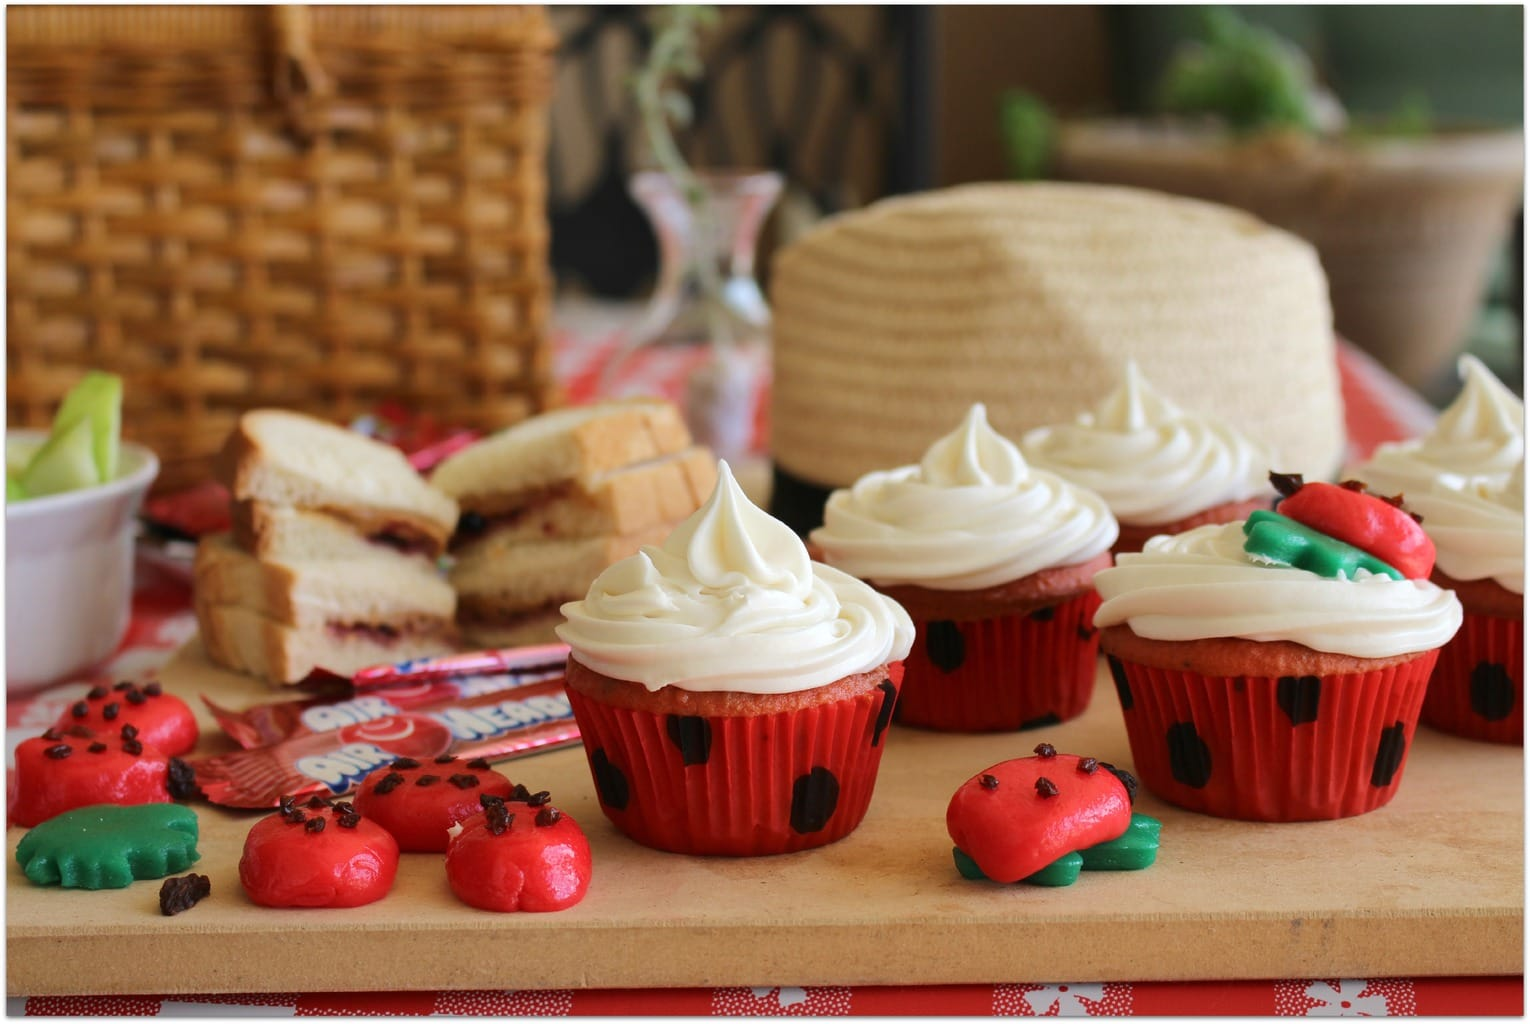 These Ladybug cupcakes are the perfect dessert for a Ladybug Picnic! This is such an easy recipe, and using Airheads for the decoration made this a DIY project anyone can do! You will never buy cupcakes again! And remember, picnics aren't just for summer! Throw a blanket on the floor and grab some food for a snack! Kids crafts or printables will add to the fun on a rainy or snowy day.